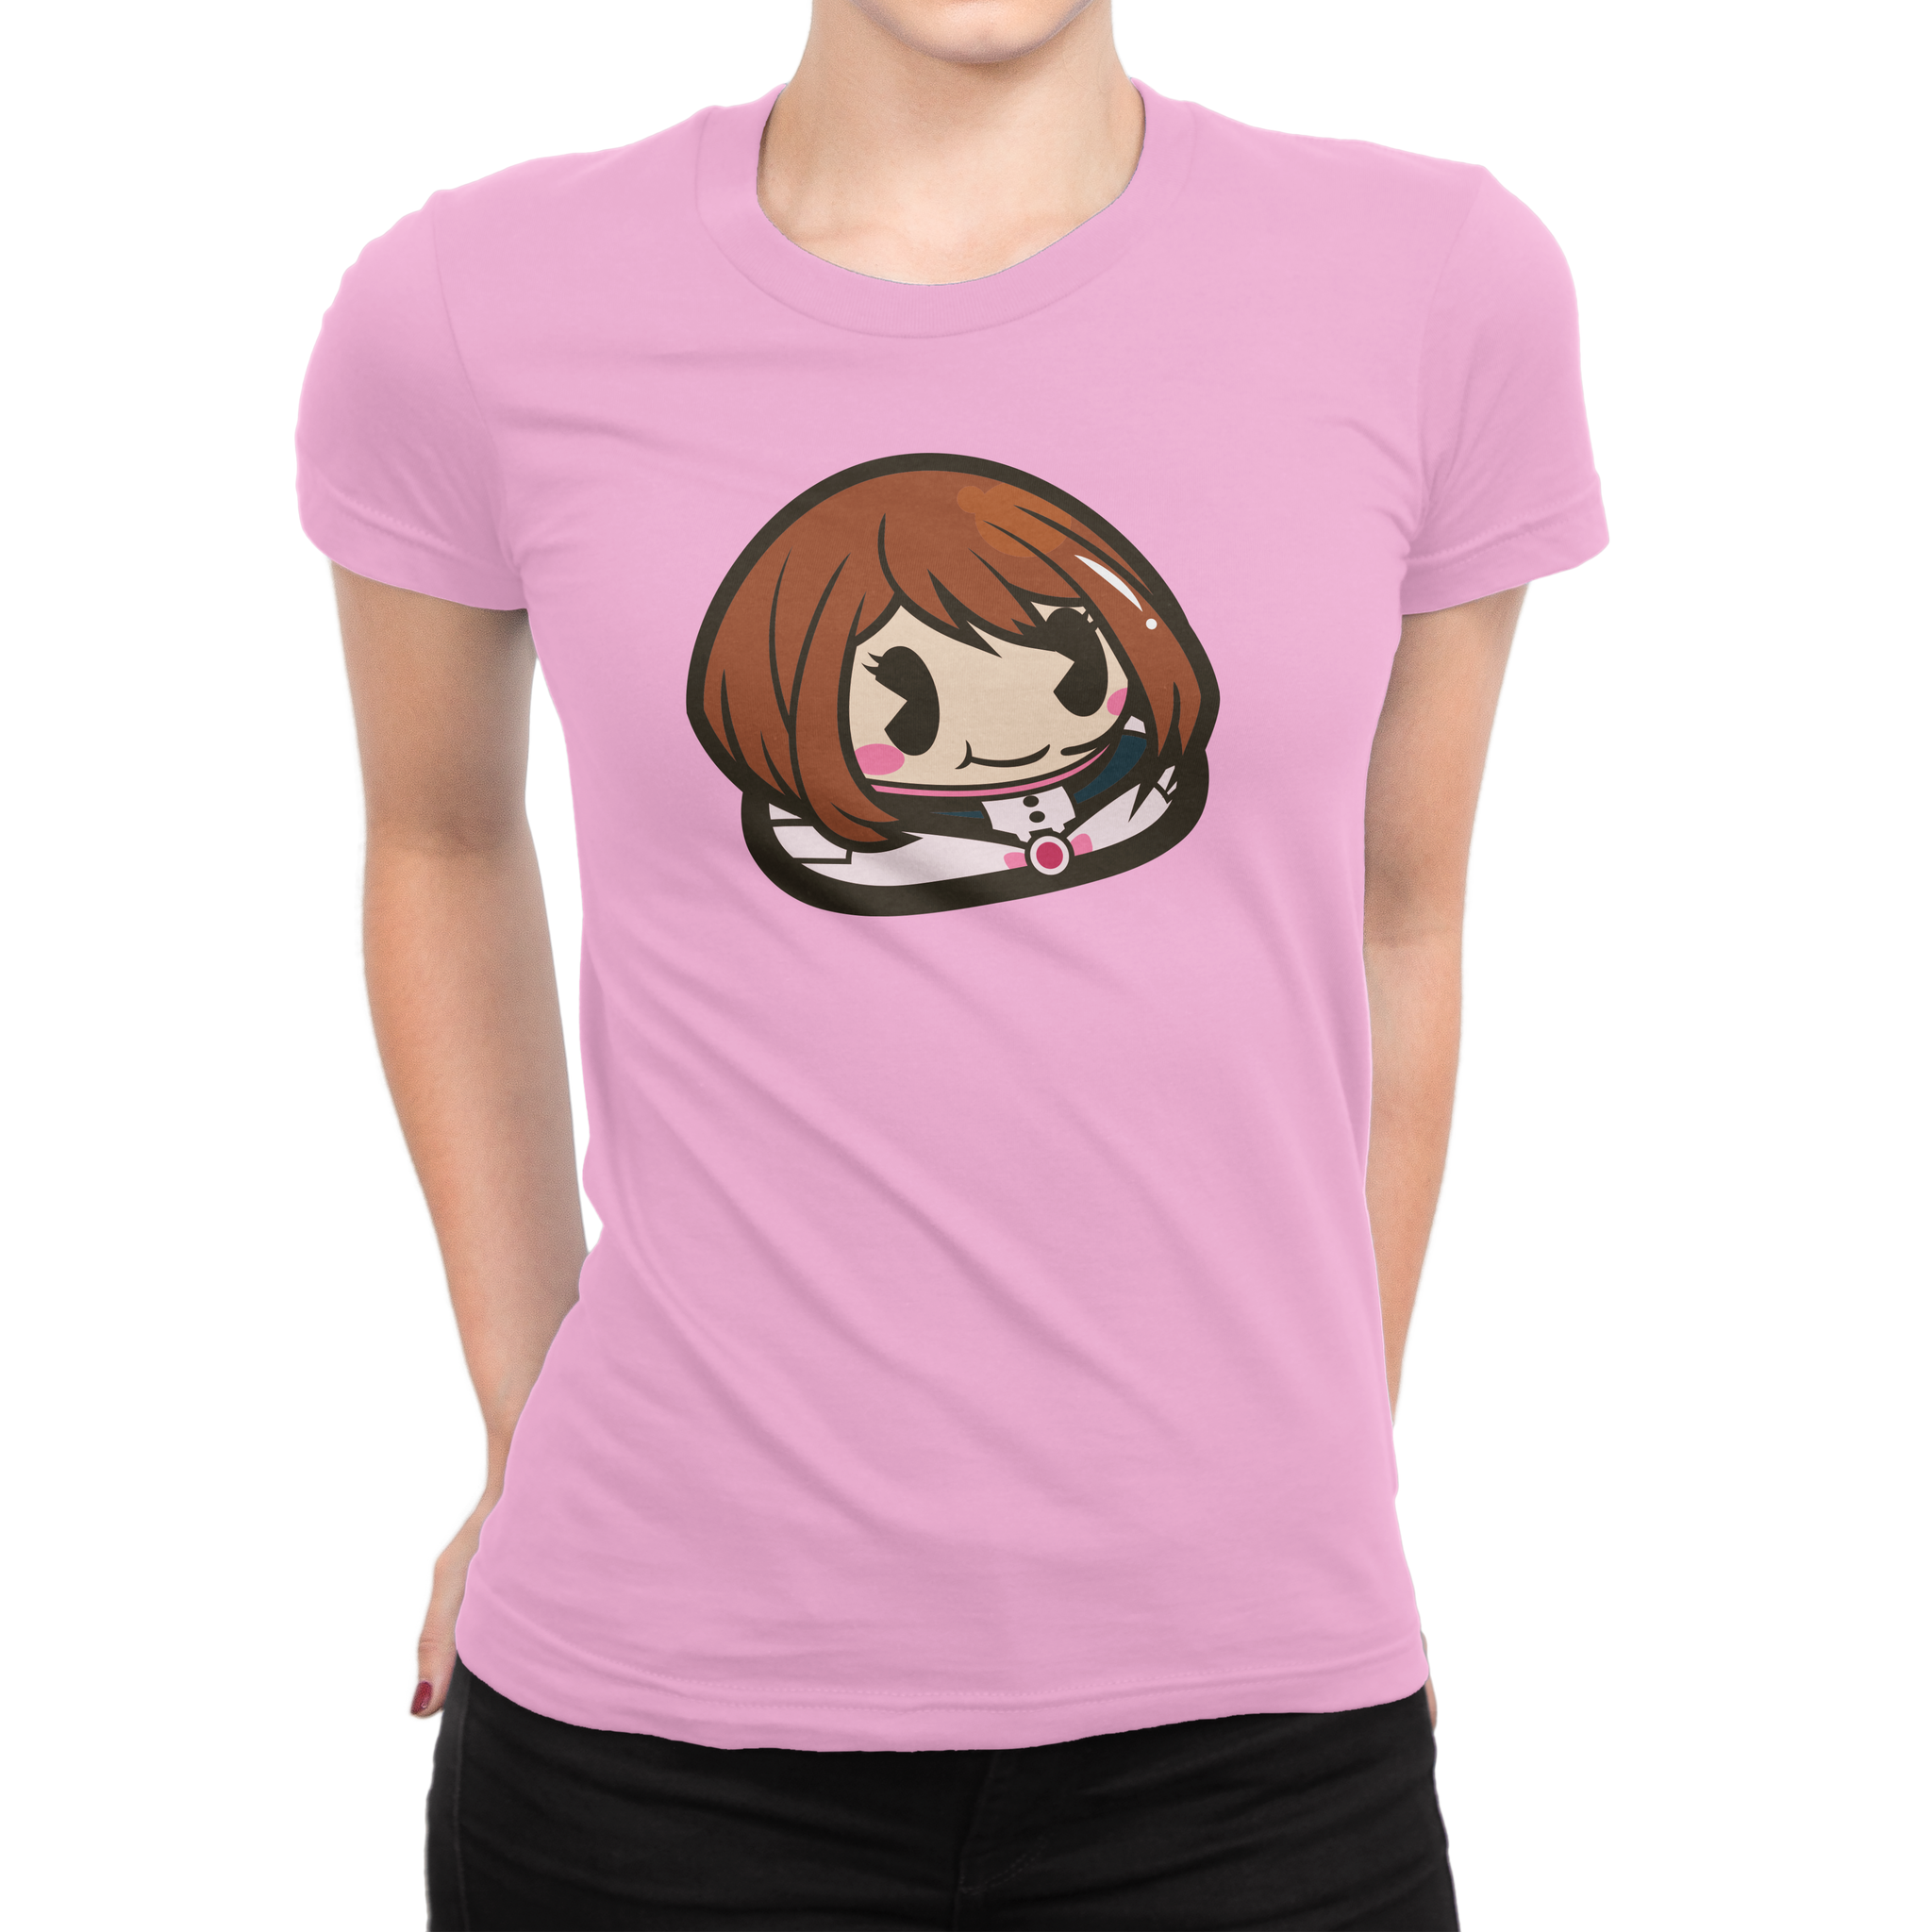 Pooravity Girl T-Shirt (Pink)